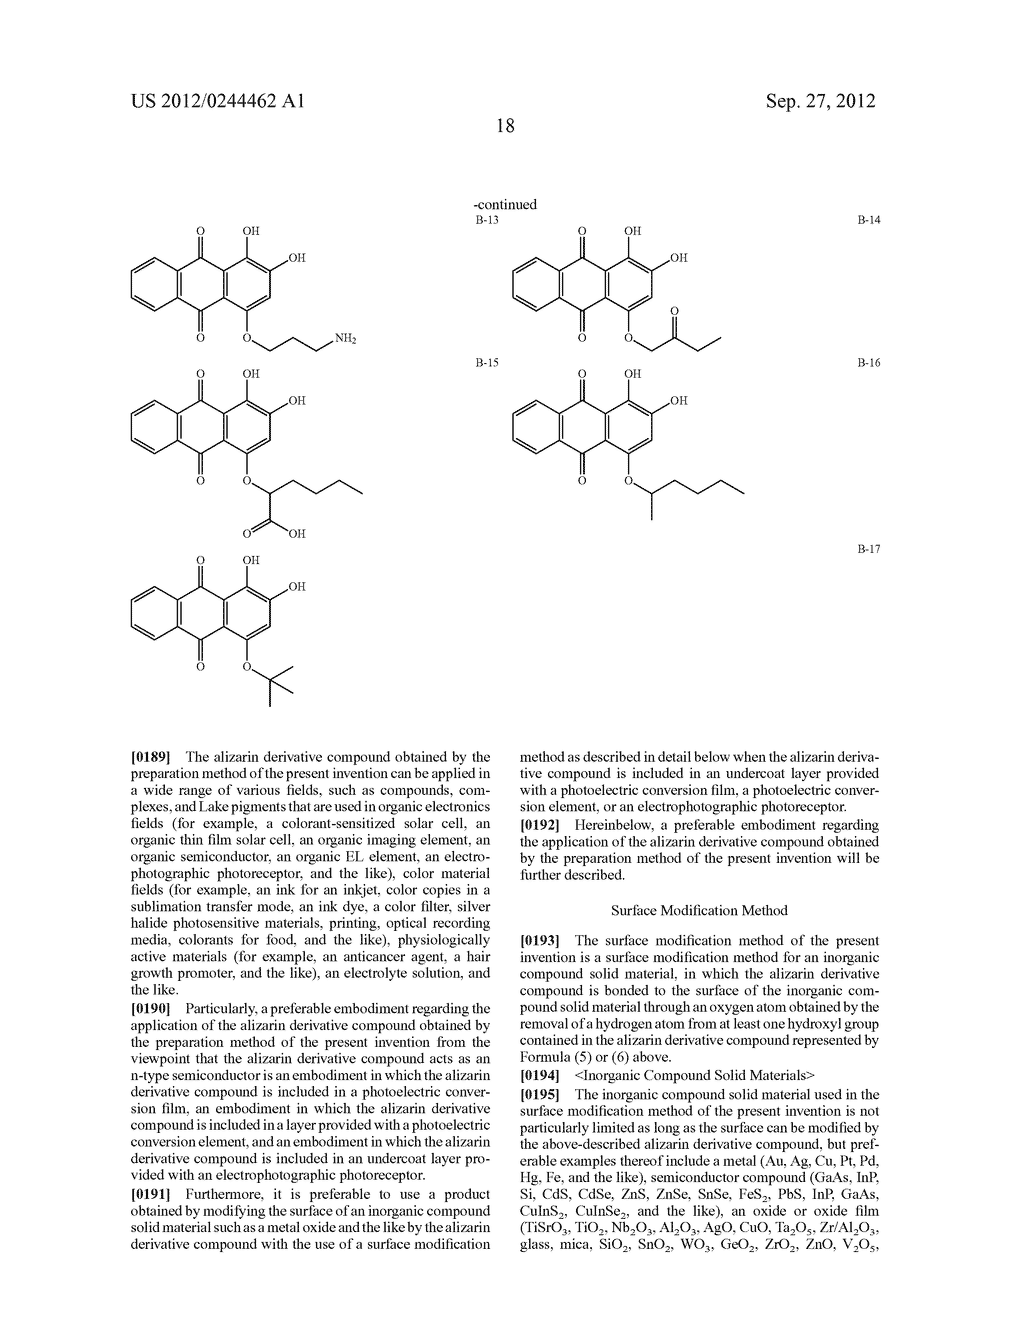 METHOD FOR PREPARING ALIZARIN DERIVATIVE COMPOUND, NOVEL ALIZARIN     DERIVATIVE COMPOUND, SURFACE MODIFICATION METHOD, PHOTOELECTRIC     CONVERSION FILM, PHOTOELECTRIC CONVERSION ELEMENT, AND     ELECTROPHOTOGRAPHIC PHOTORECEPTOR - diagram, schematic, and image 20